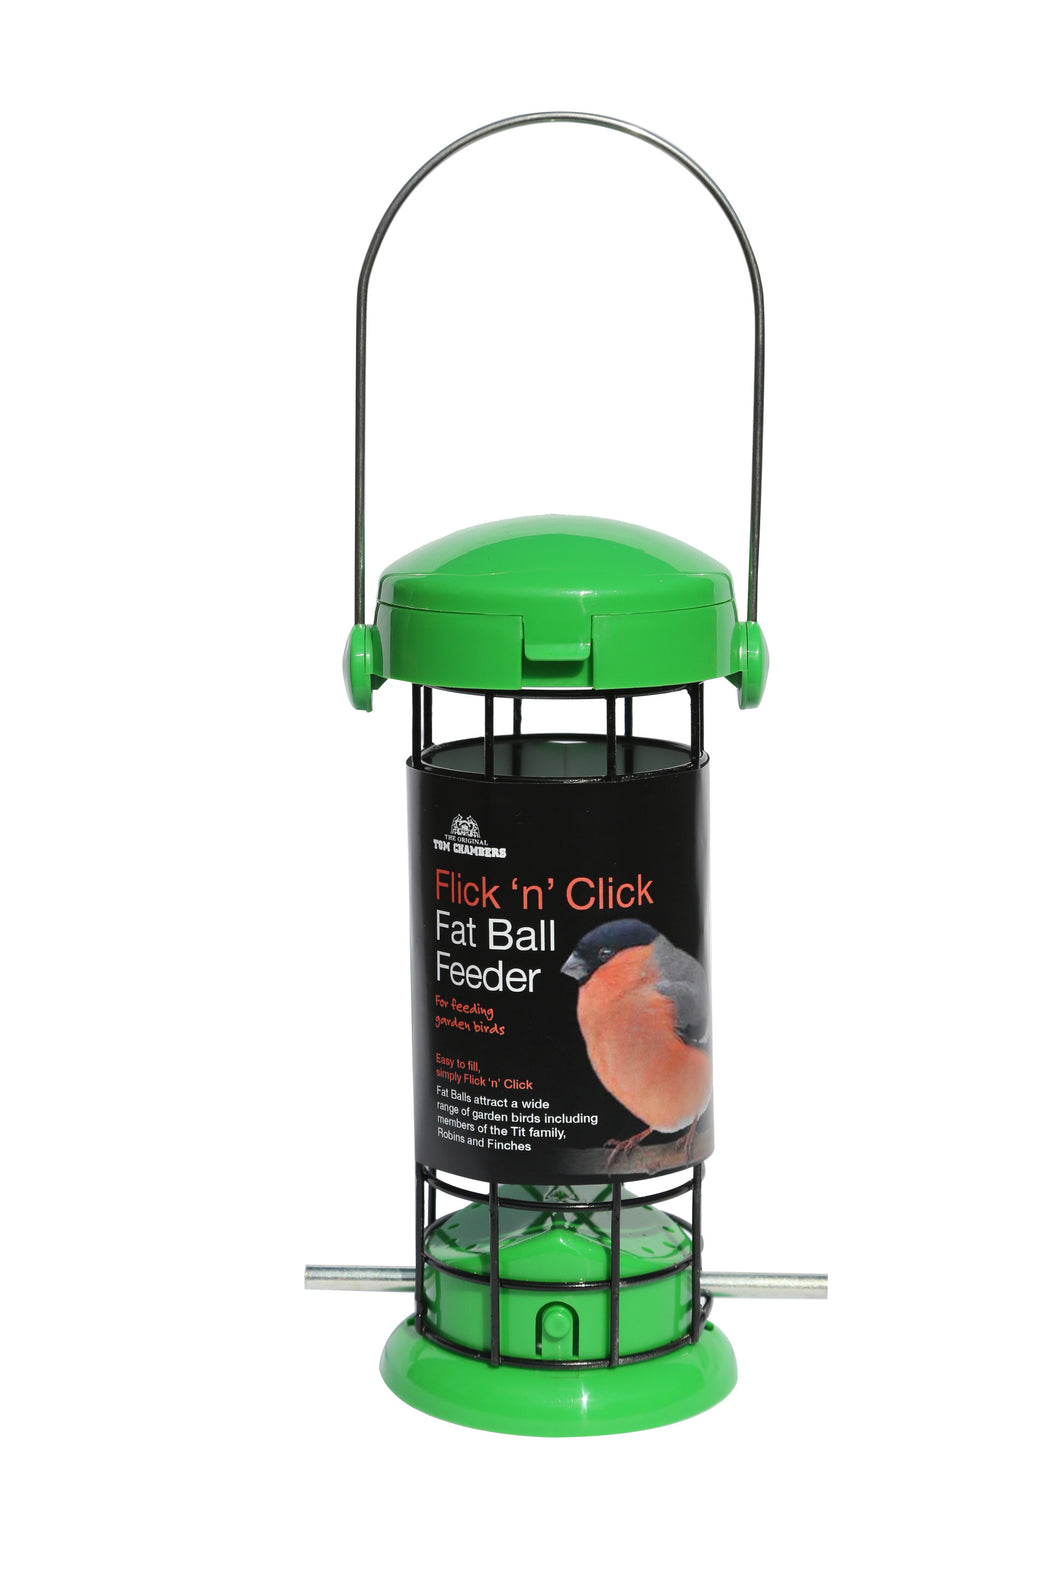 Flick 'n' Click Fat Ball Feeder